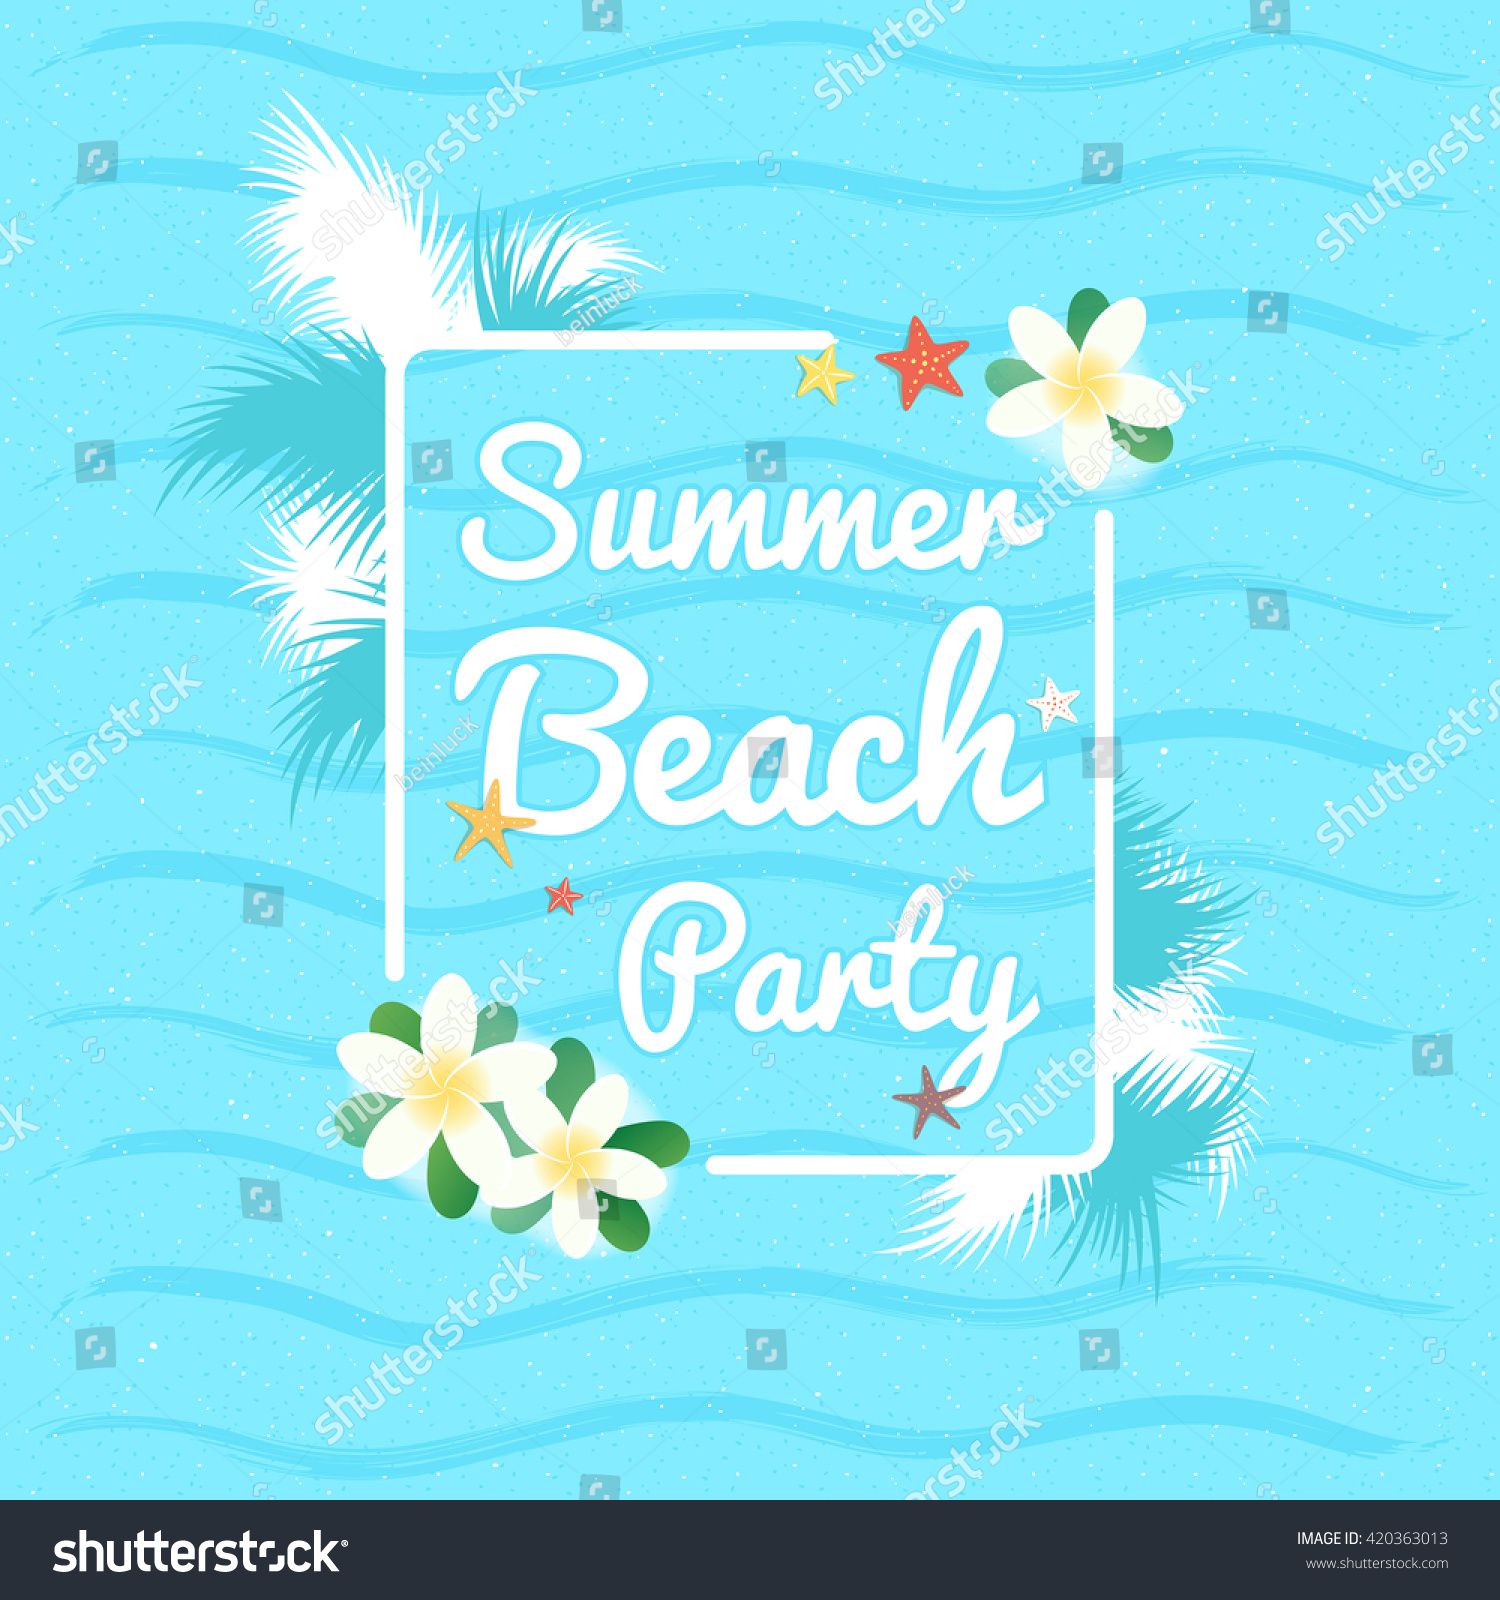 Summer Beach Party Summer Vacation Background Stock Vector ...